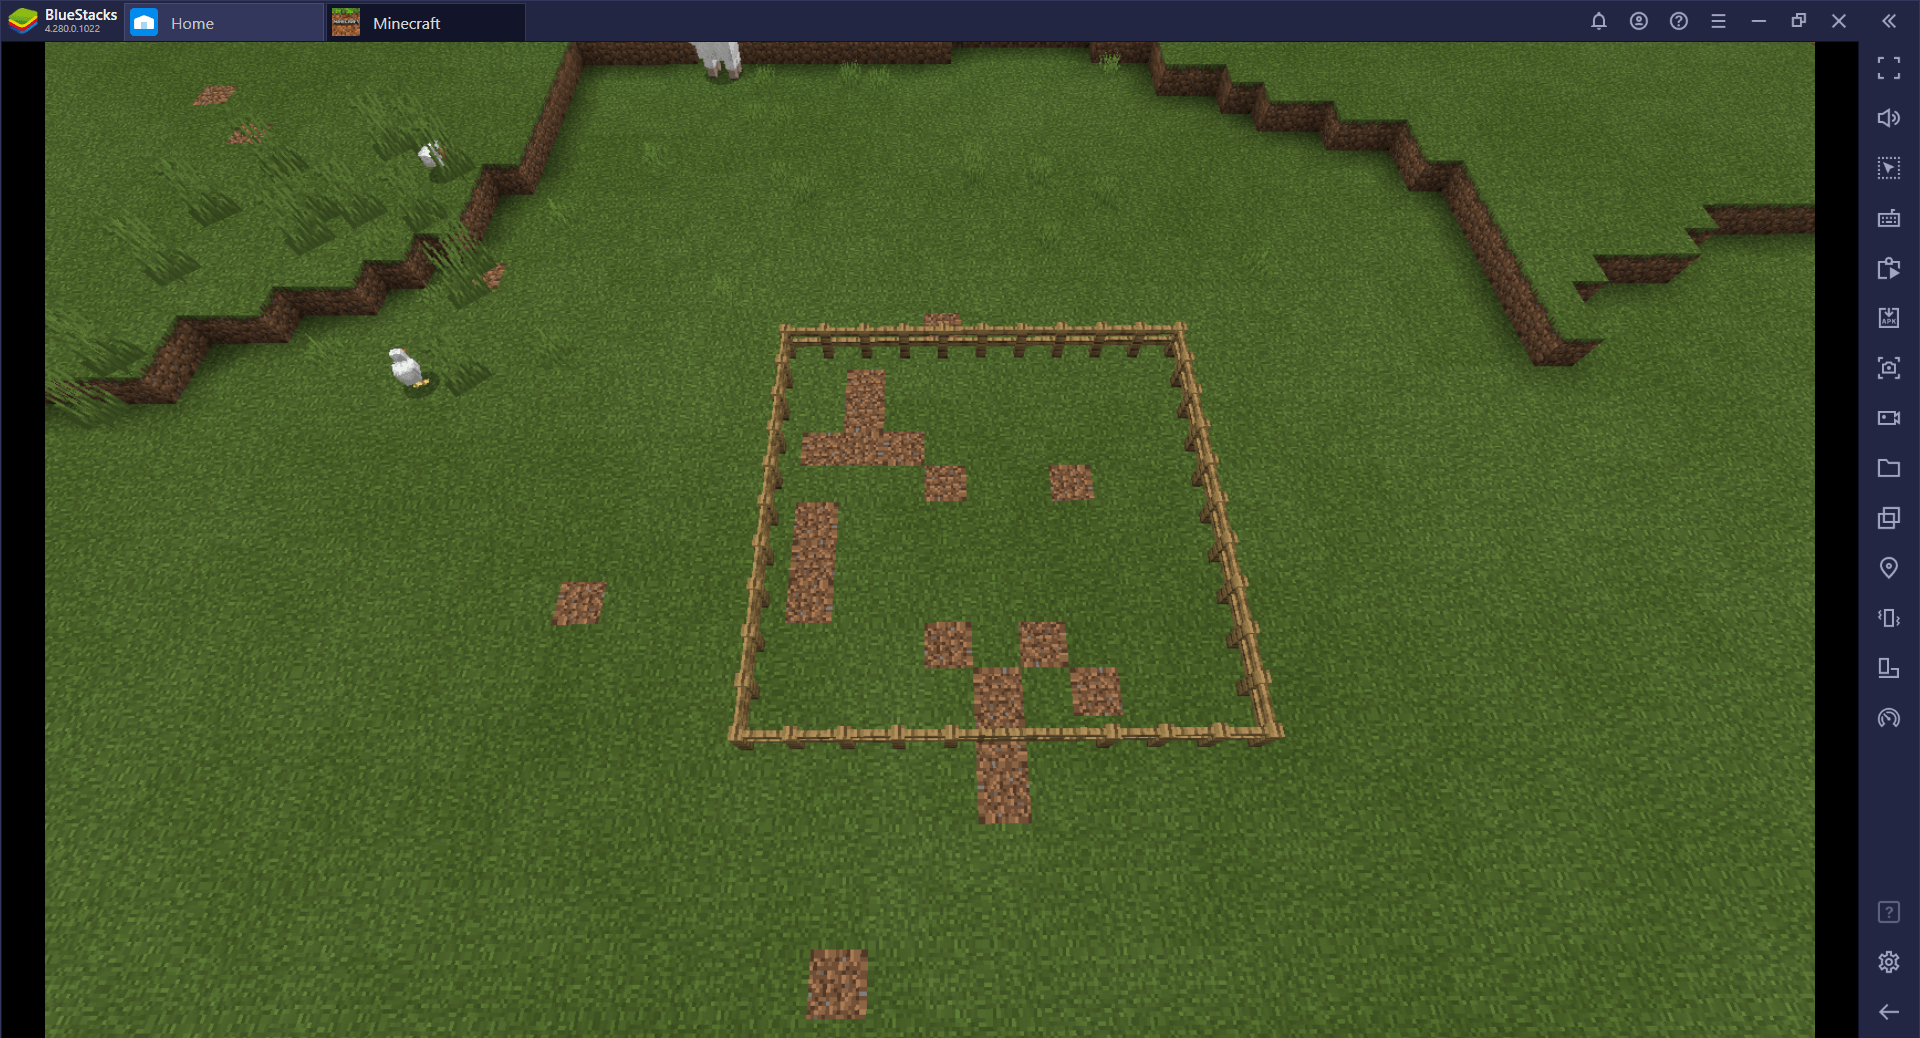 BlueStacks Guide to Building Animal Farms in Minecraft